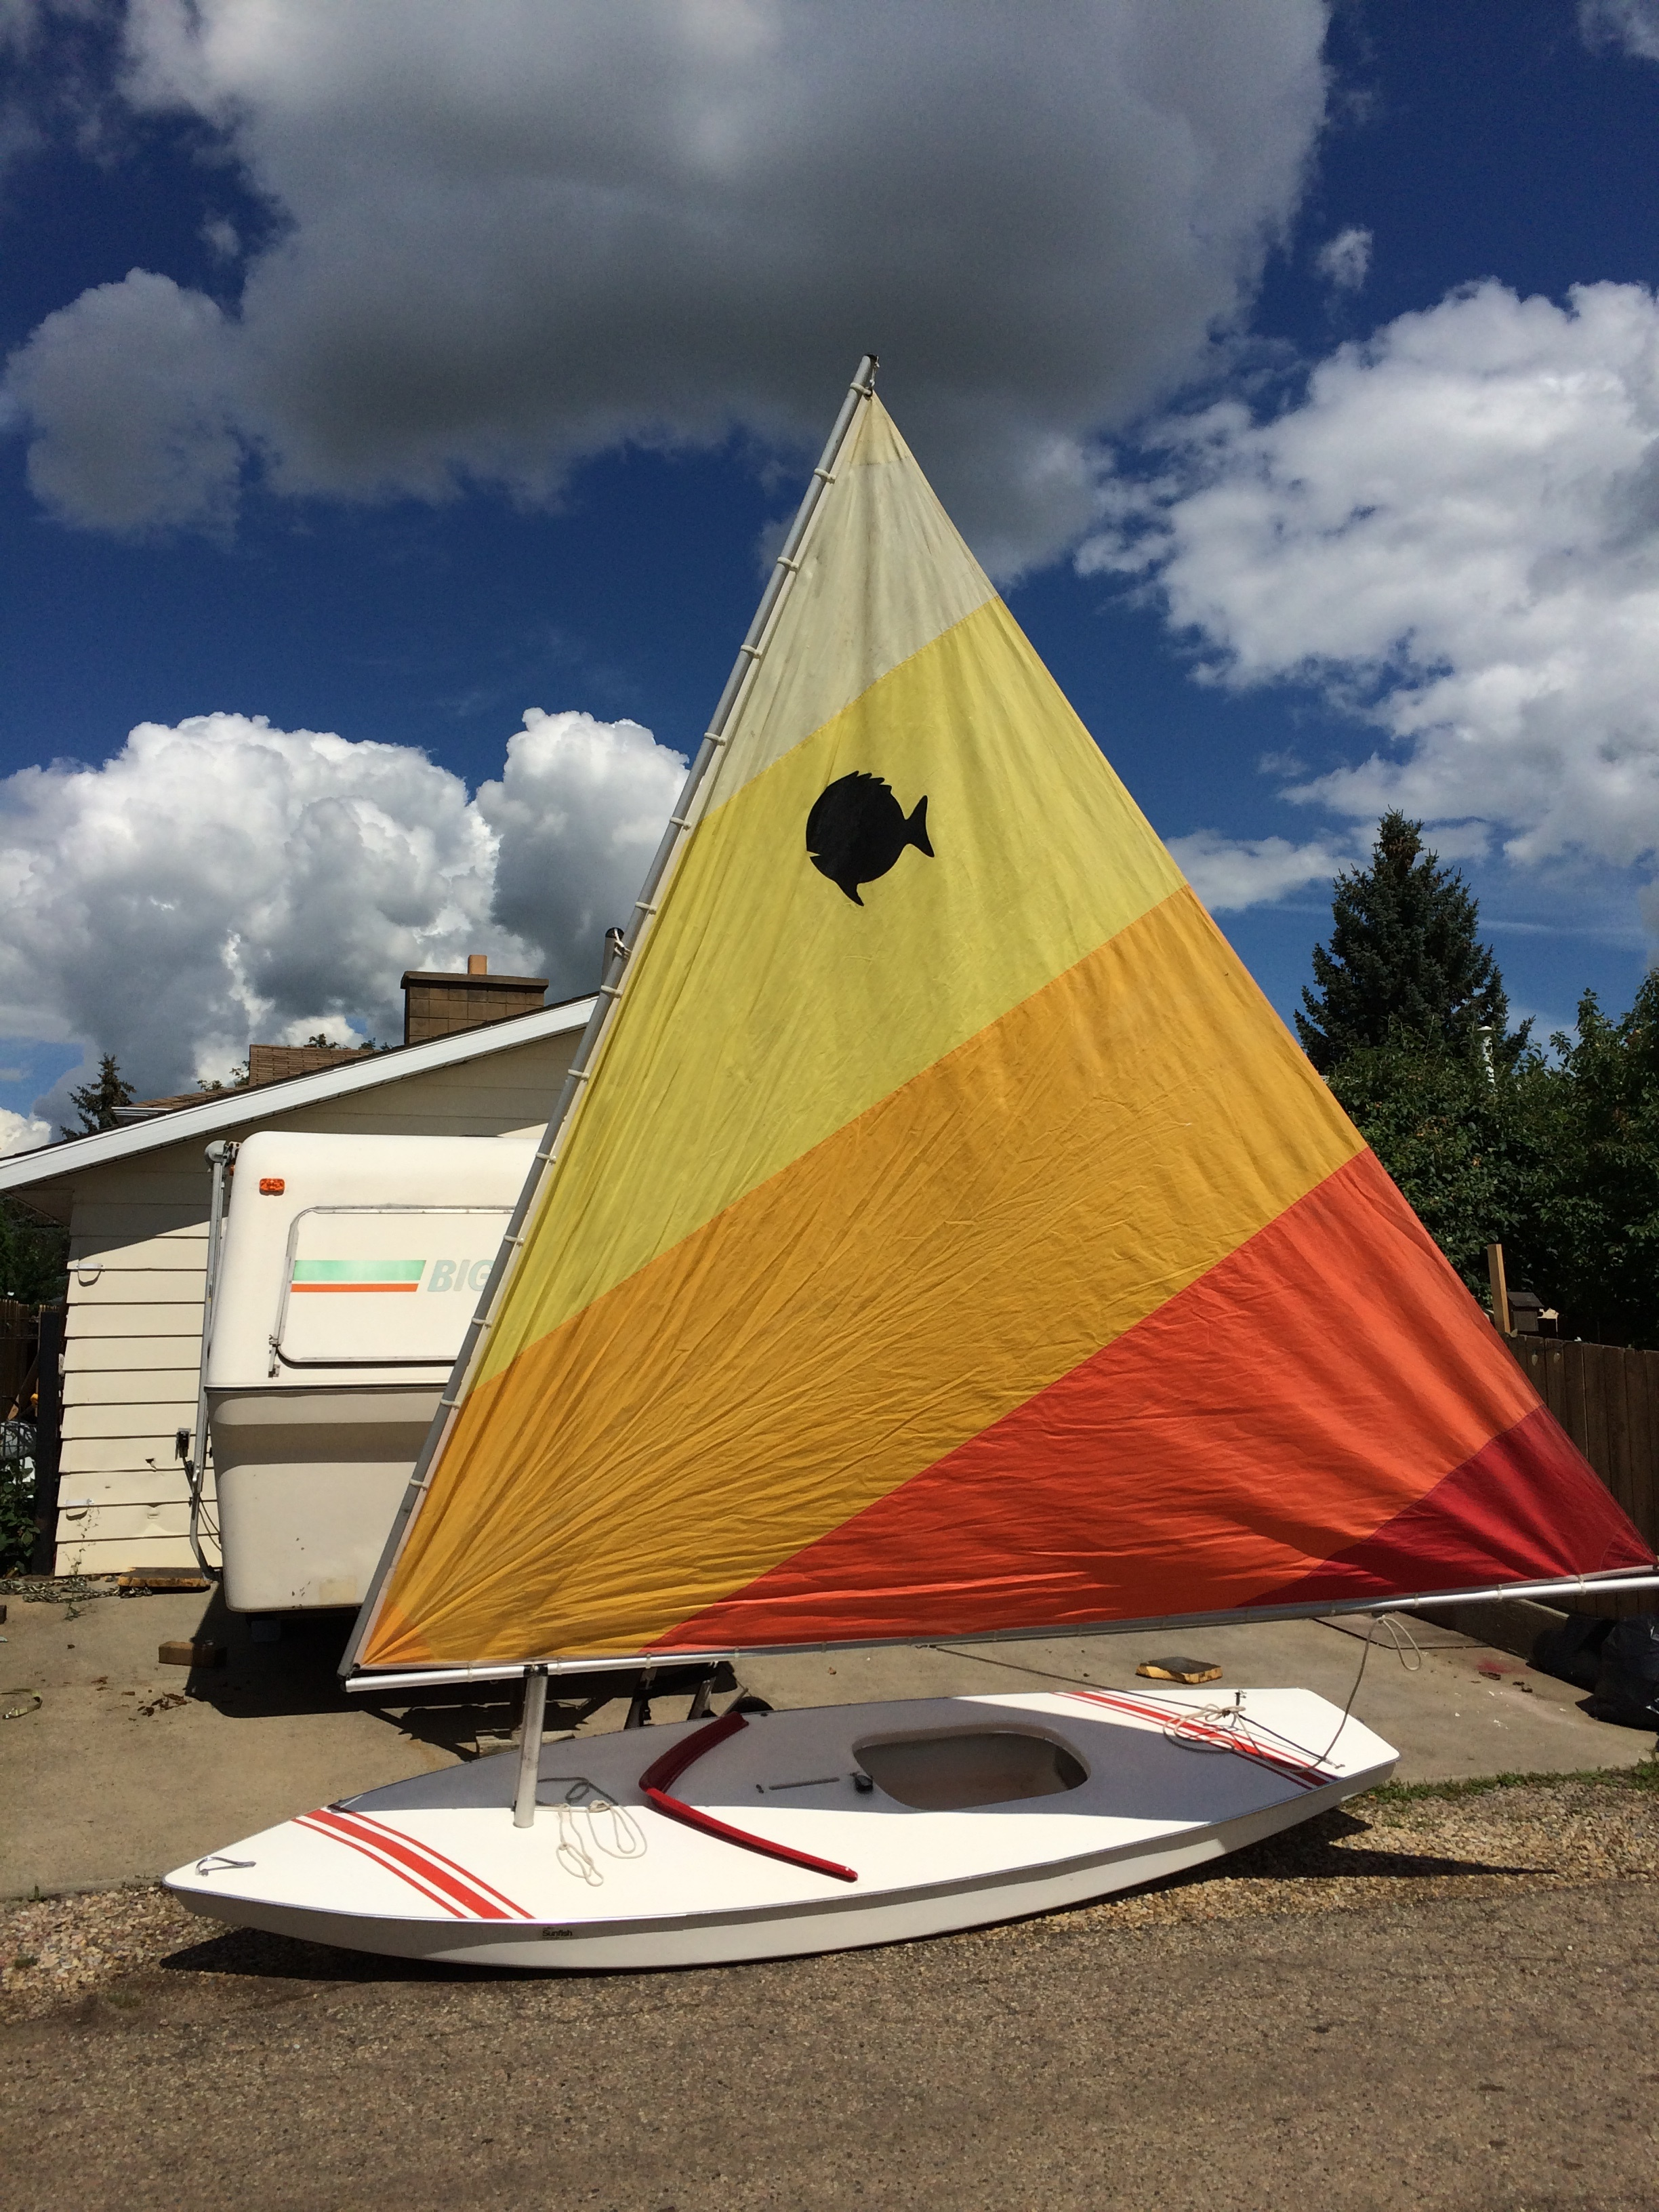 Sailboats for Sale Edmonton - Sail Boat Classified Ads Free